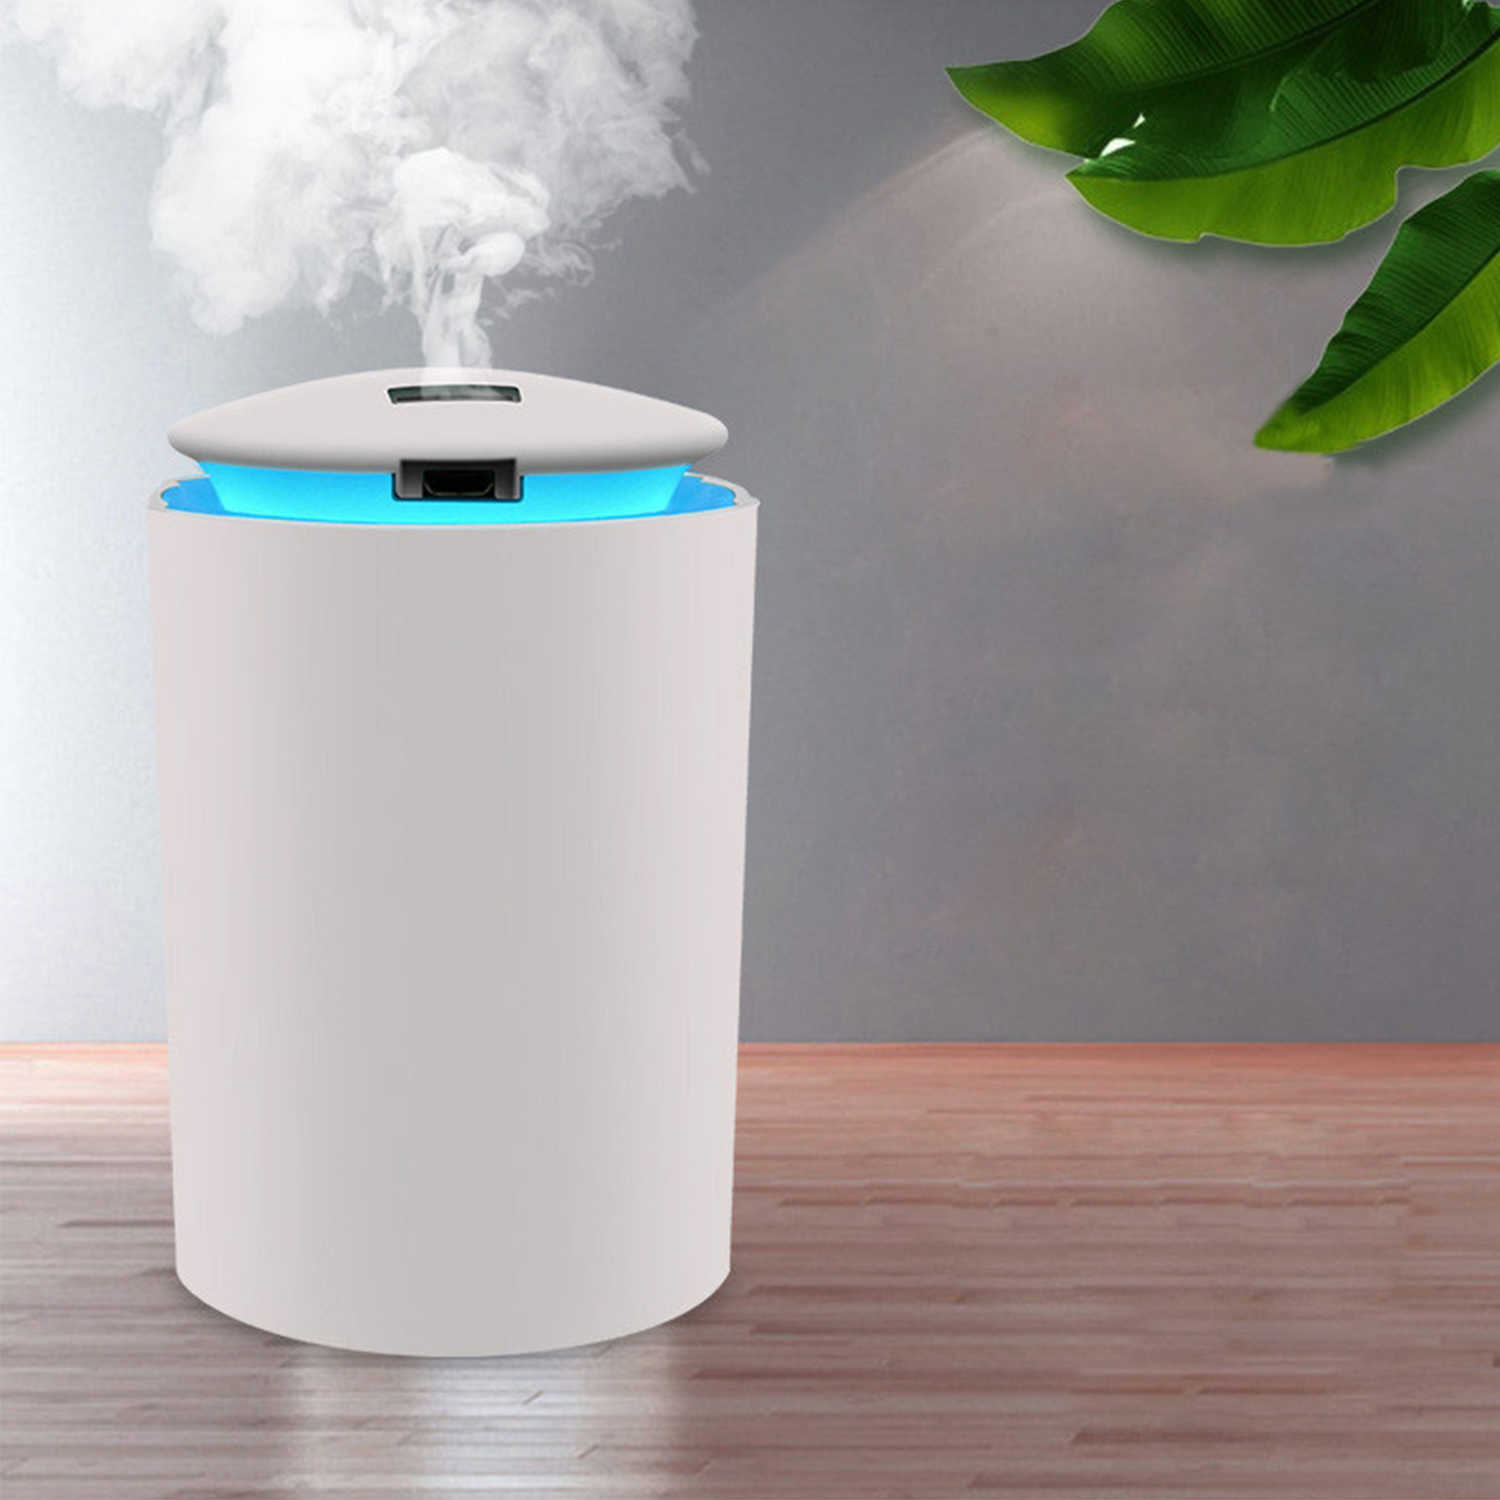 260ml Mist Air Humidifier Diffuser With Led Light Quiet Car Humidifier Essential Oil Diffuser For Bedroom Usb Aroma Diffuser Humidifiers Aliexpress